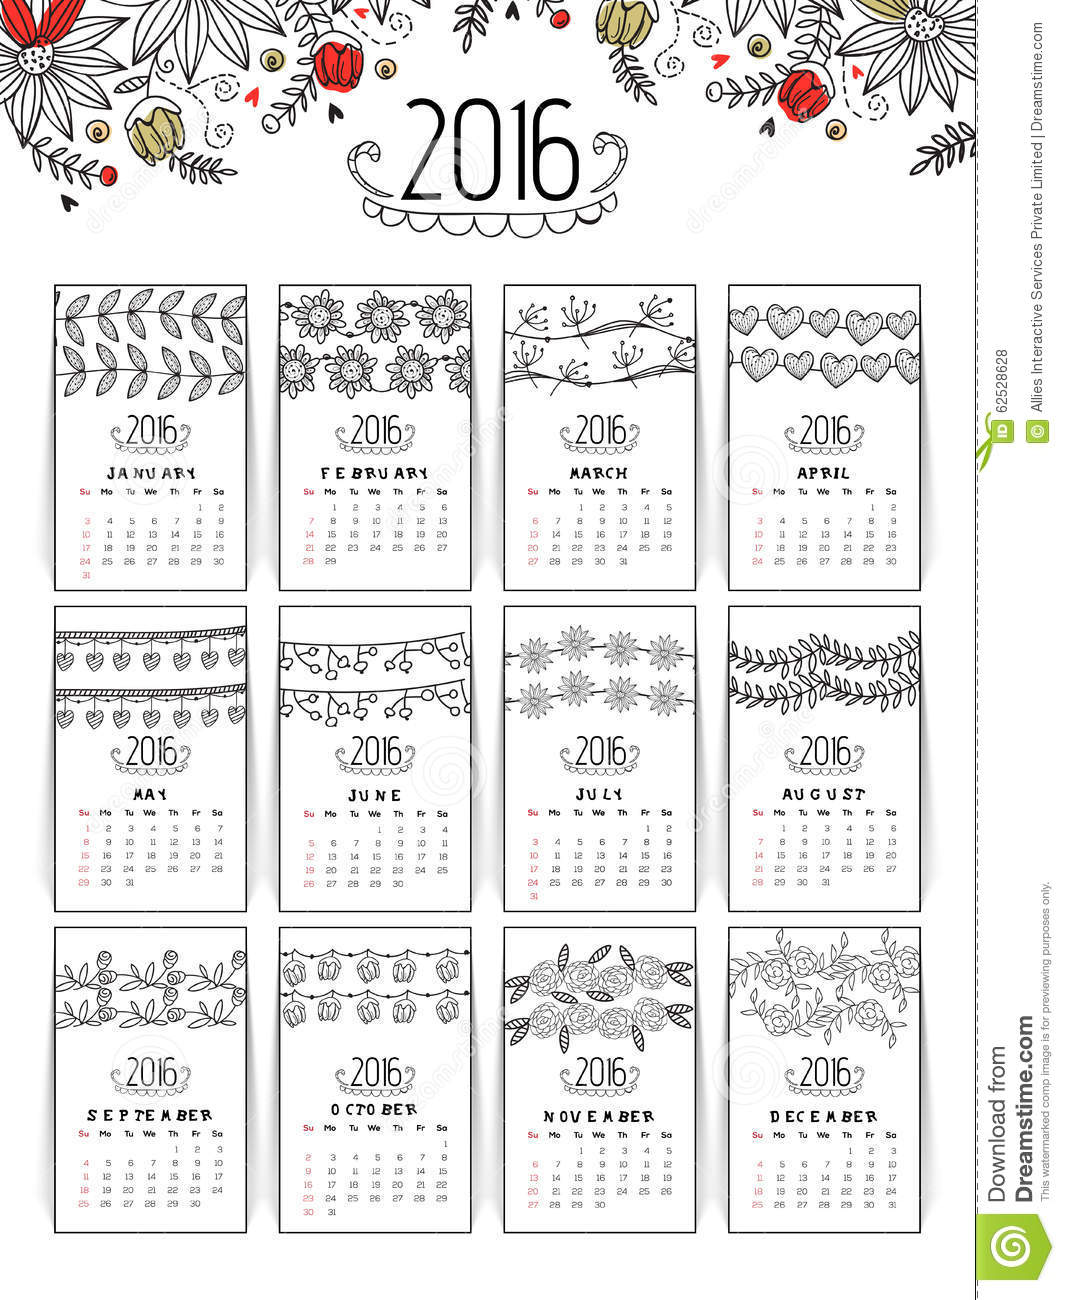 Beautiful Calendar Design : Floral annual calendar for new year stock photo